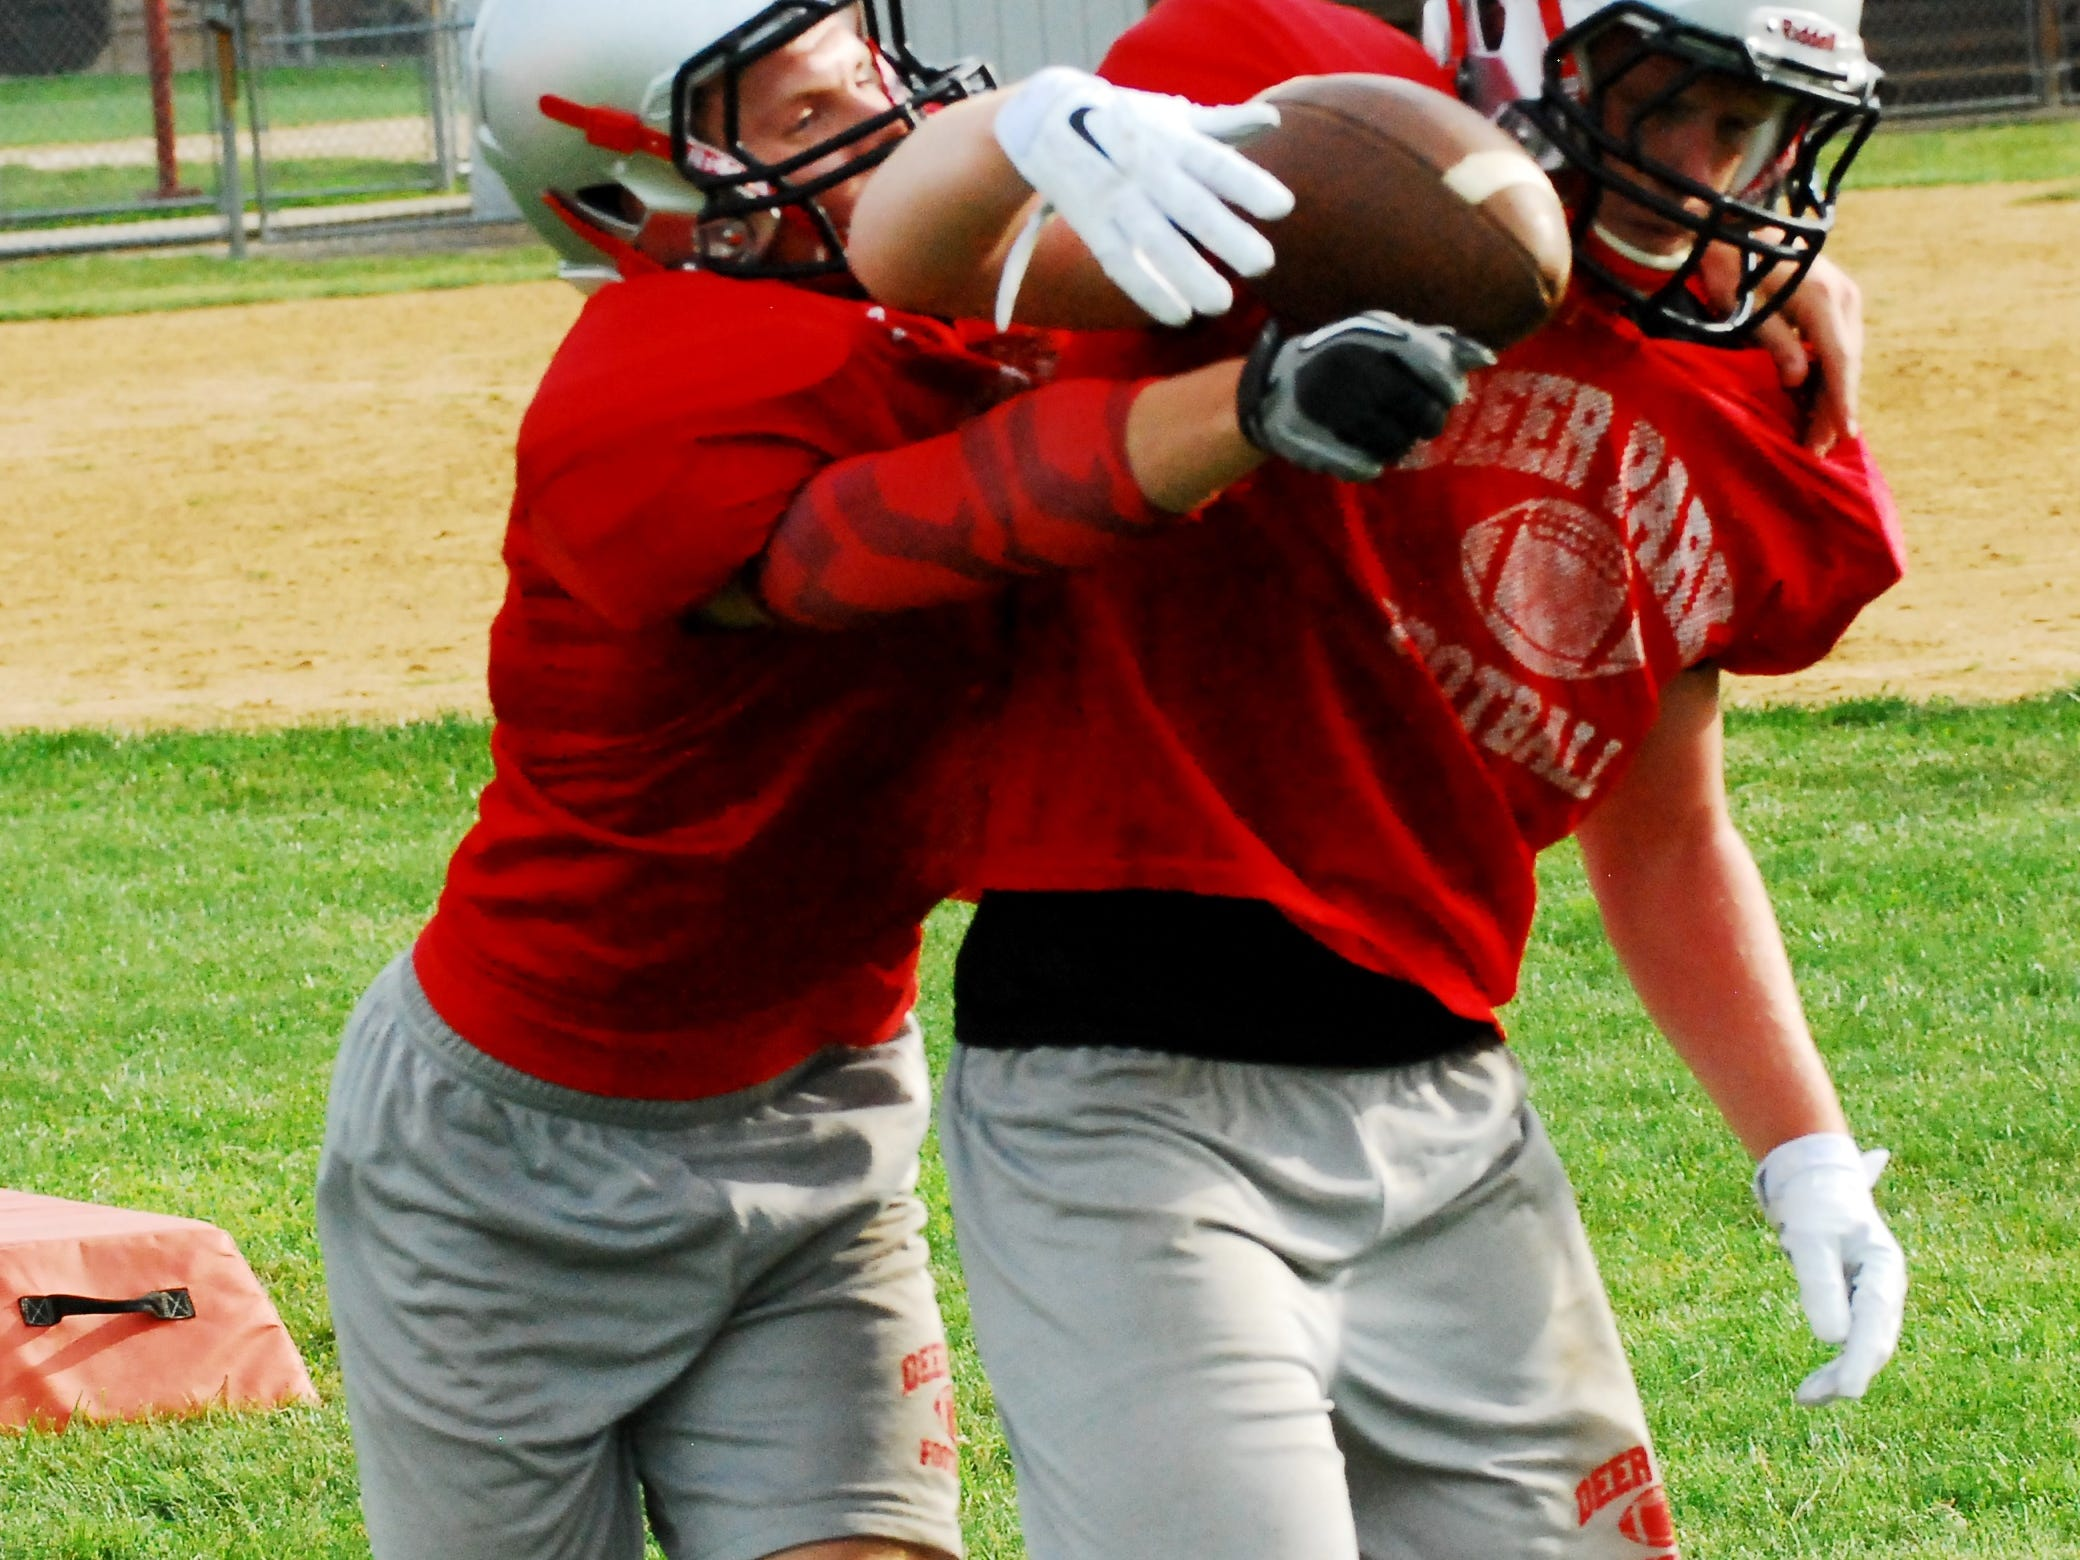 Deer Park senior Austin Siemon, back, works to strip his teammate Tanner Hicks, front, of the ball during Wildcat practice.